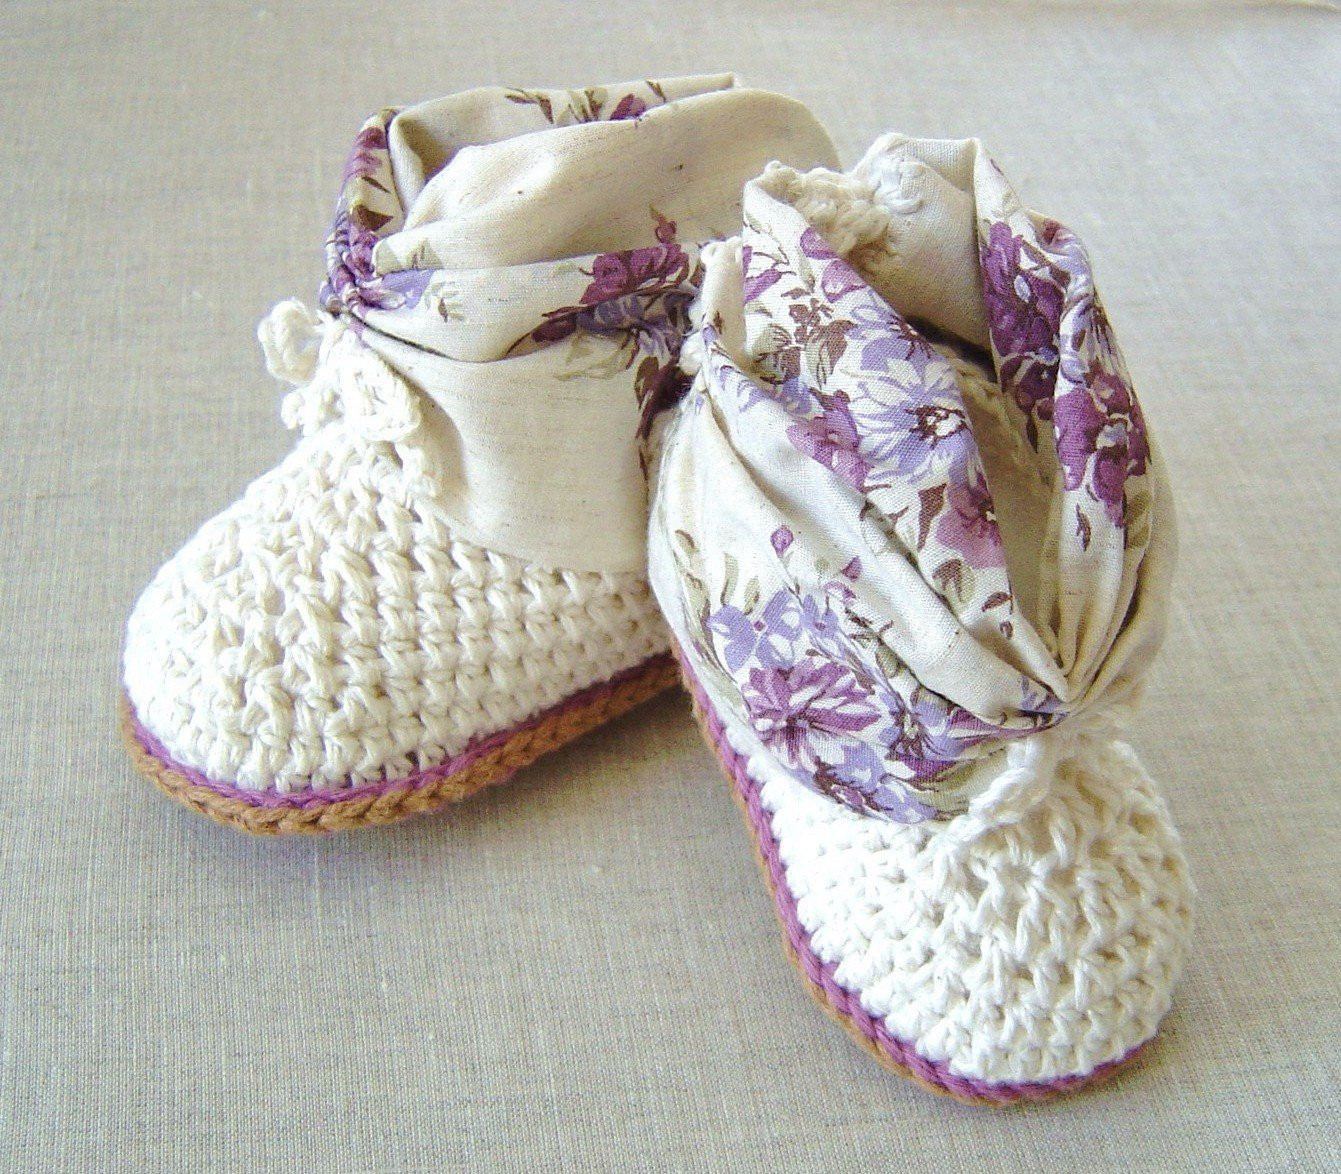 Baby Booties Crochet Pattern Luxury Crochet Pattern Baby Booties Baby Shoes Crochet Pattern Photo Of Top 49 Pictures Baby Booties Crochet Pattern